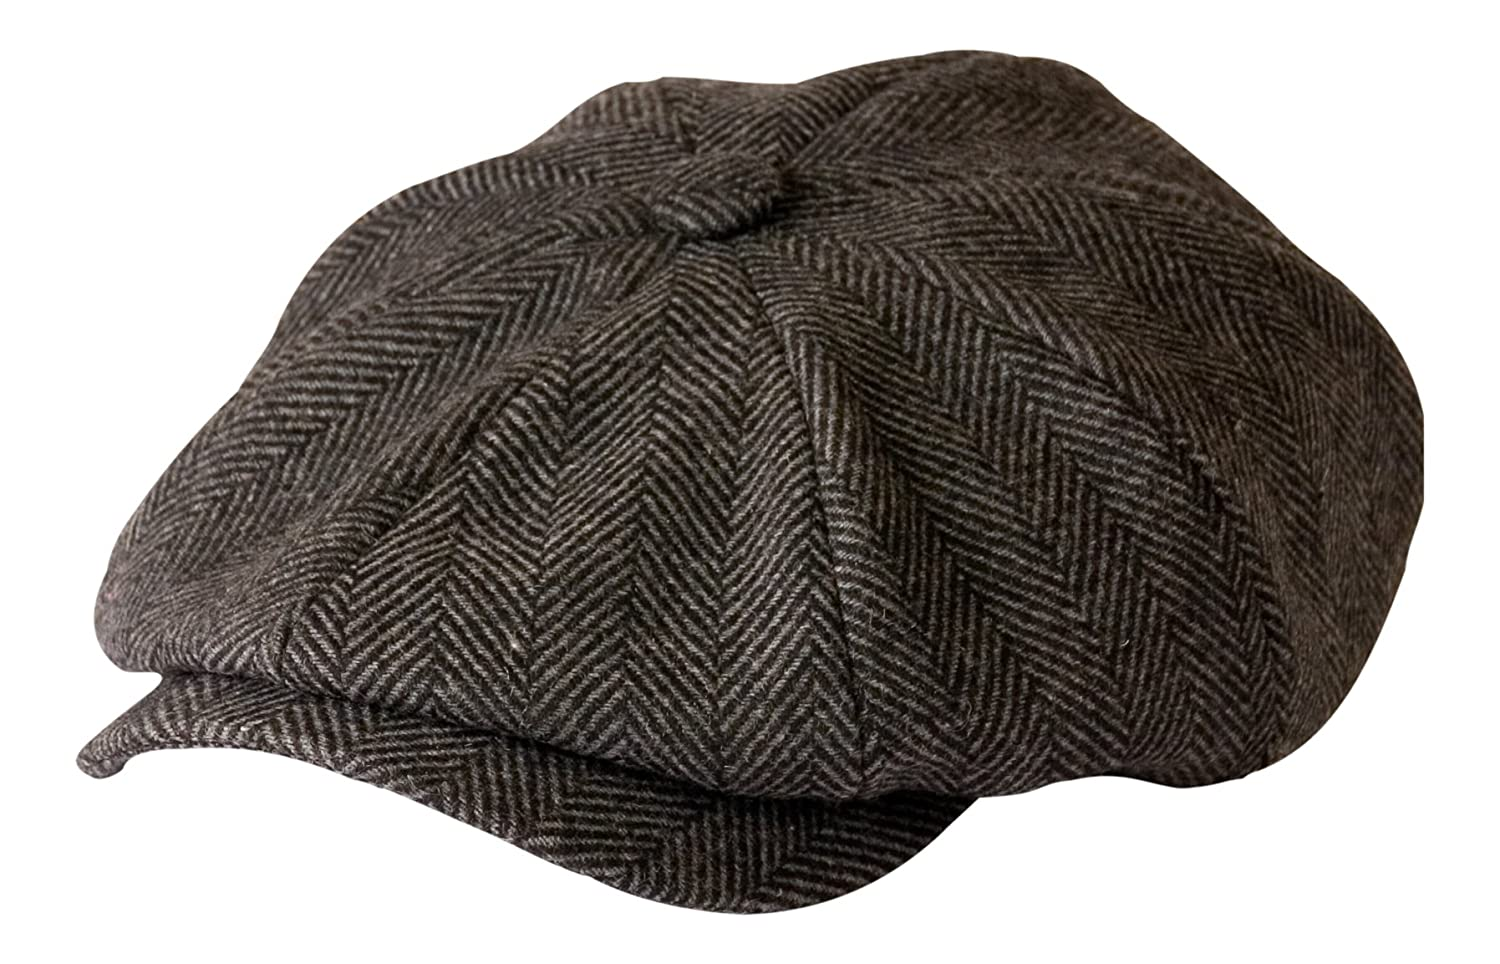 'Shelby' Newsboy Grey Herringbone Cloth Cap By Gamble & Gunn